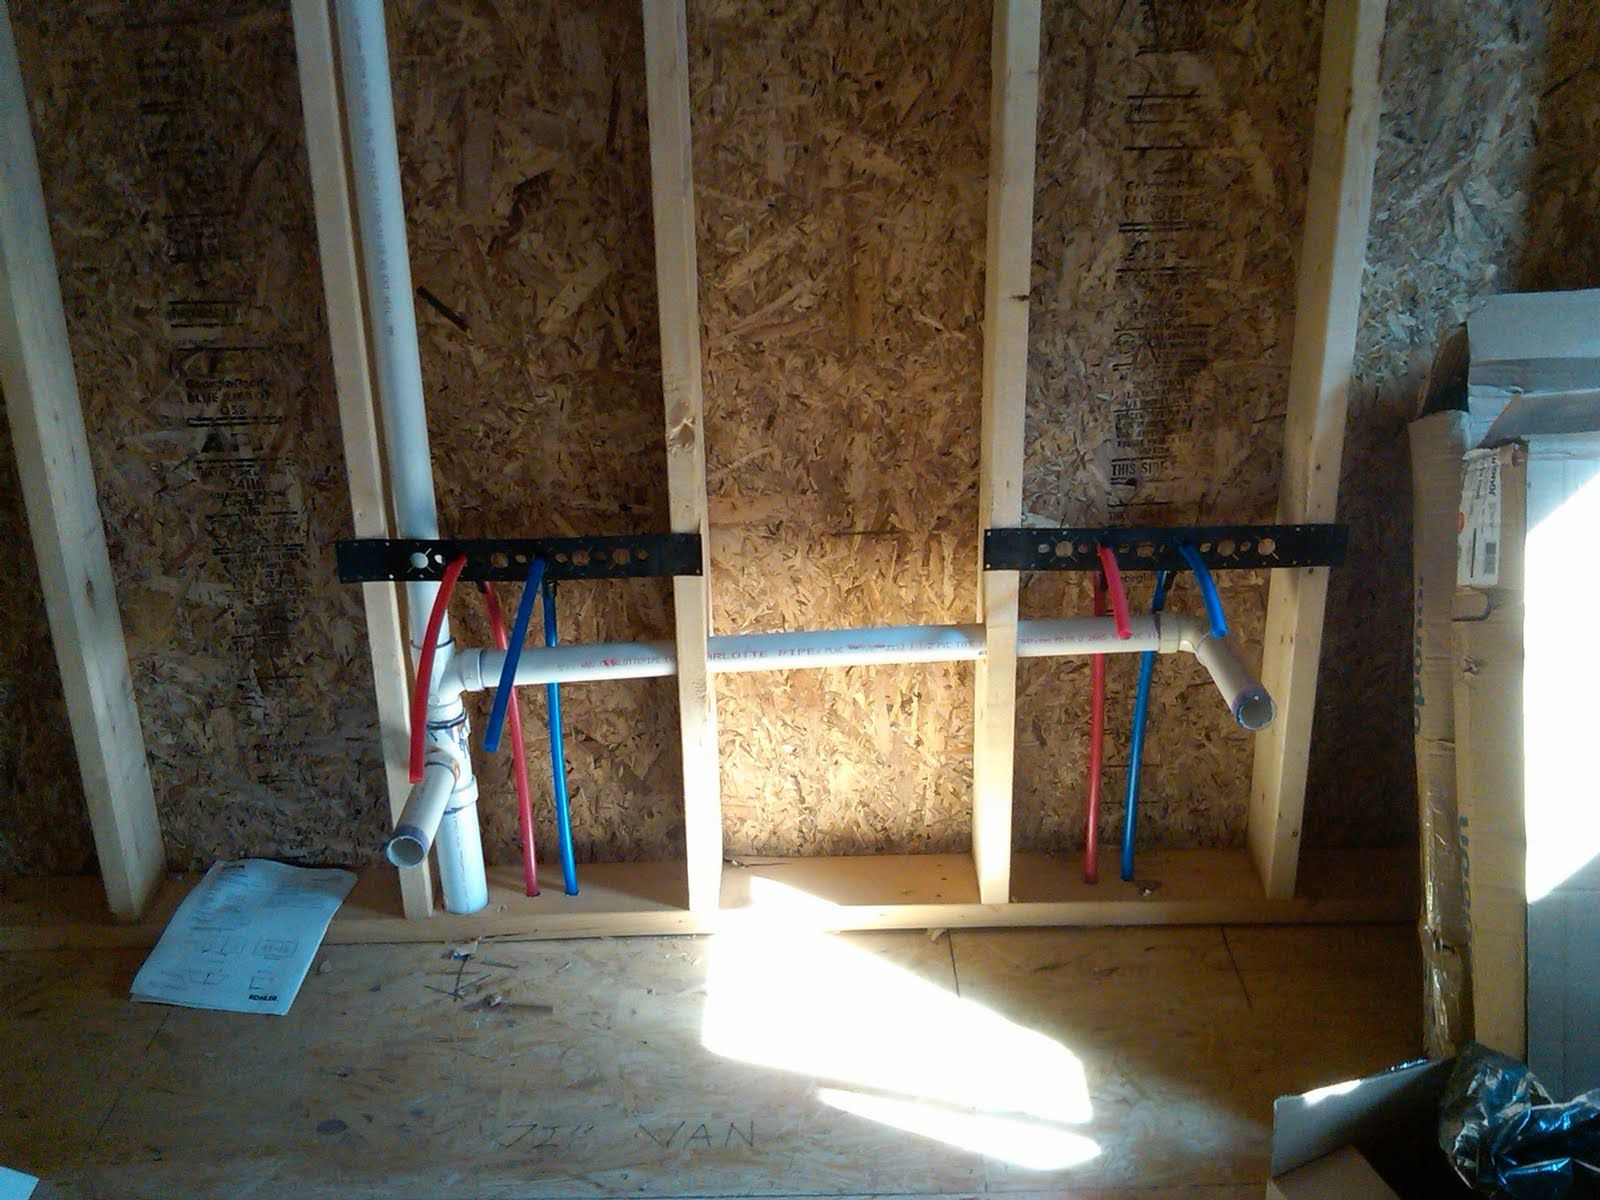 Pex plumbing drains install photo plumbing pinterest pex plumbing plumbing drains and Bathroom toilet installation